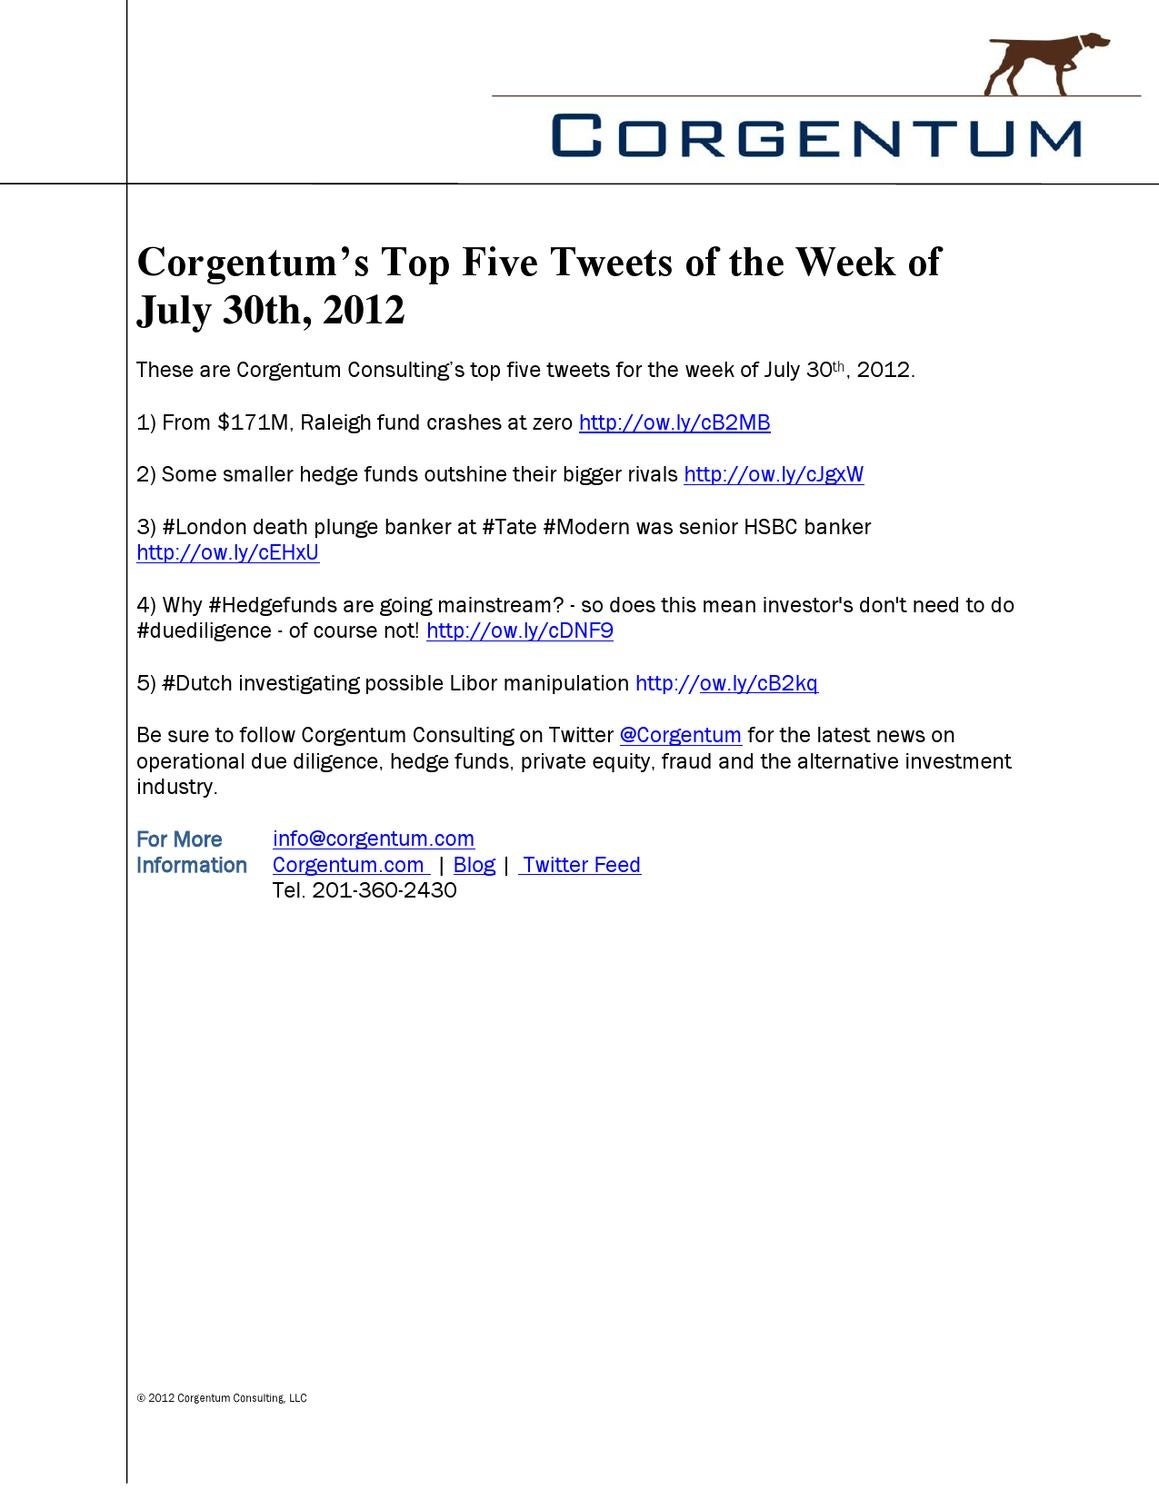 Corgentum's Top 5 Tweets- Week of July 30, 2012 by Corgentum